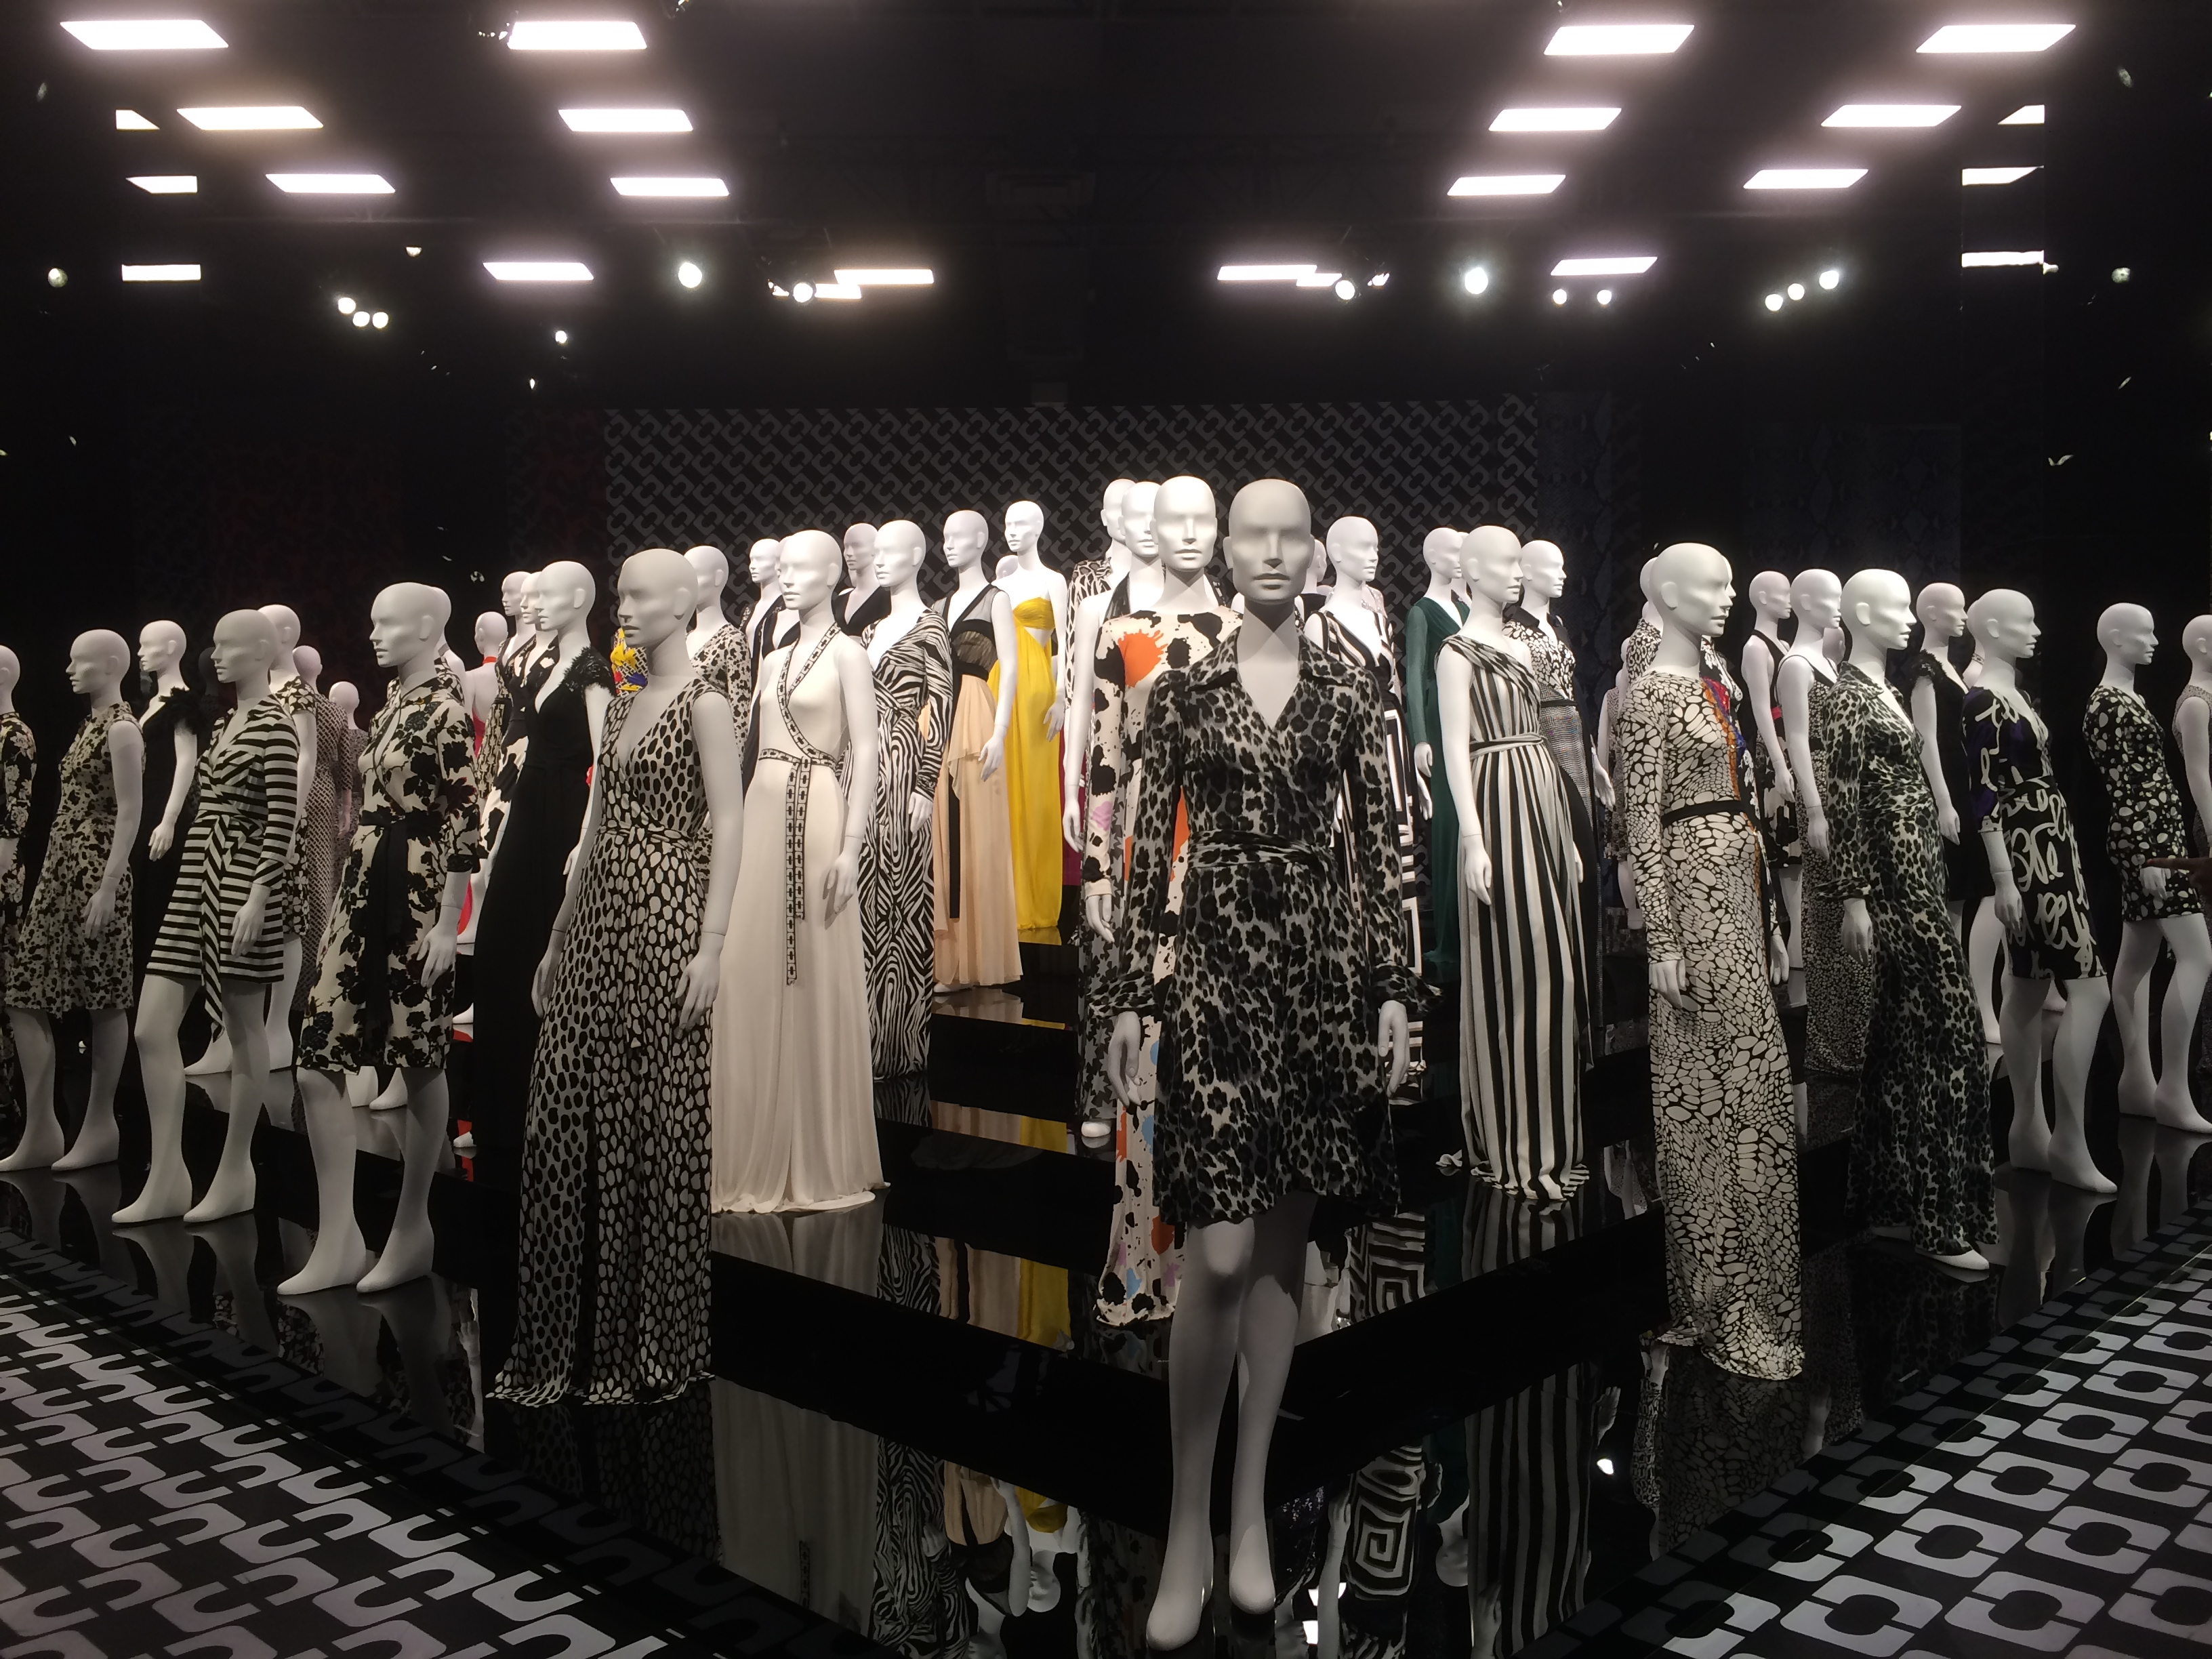 DVF Wrap Dress Exhibit